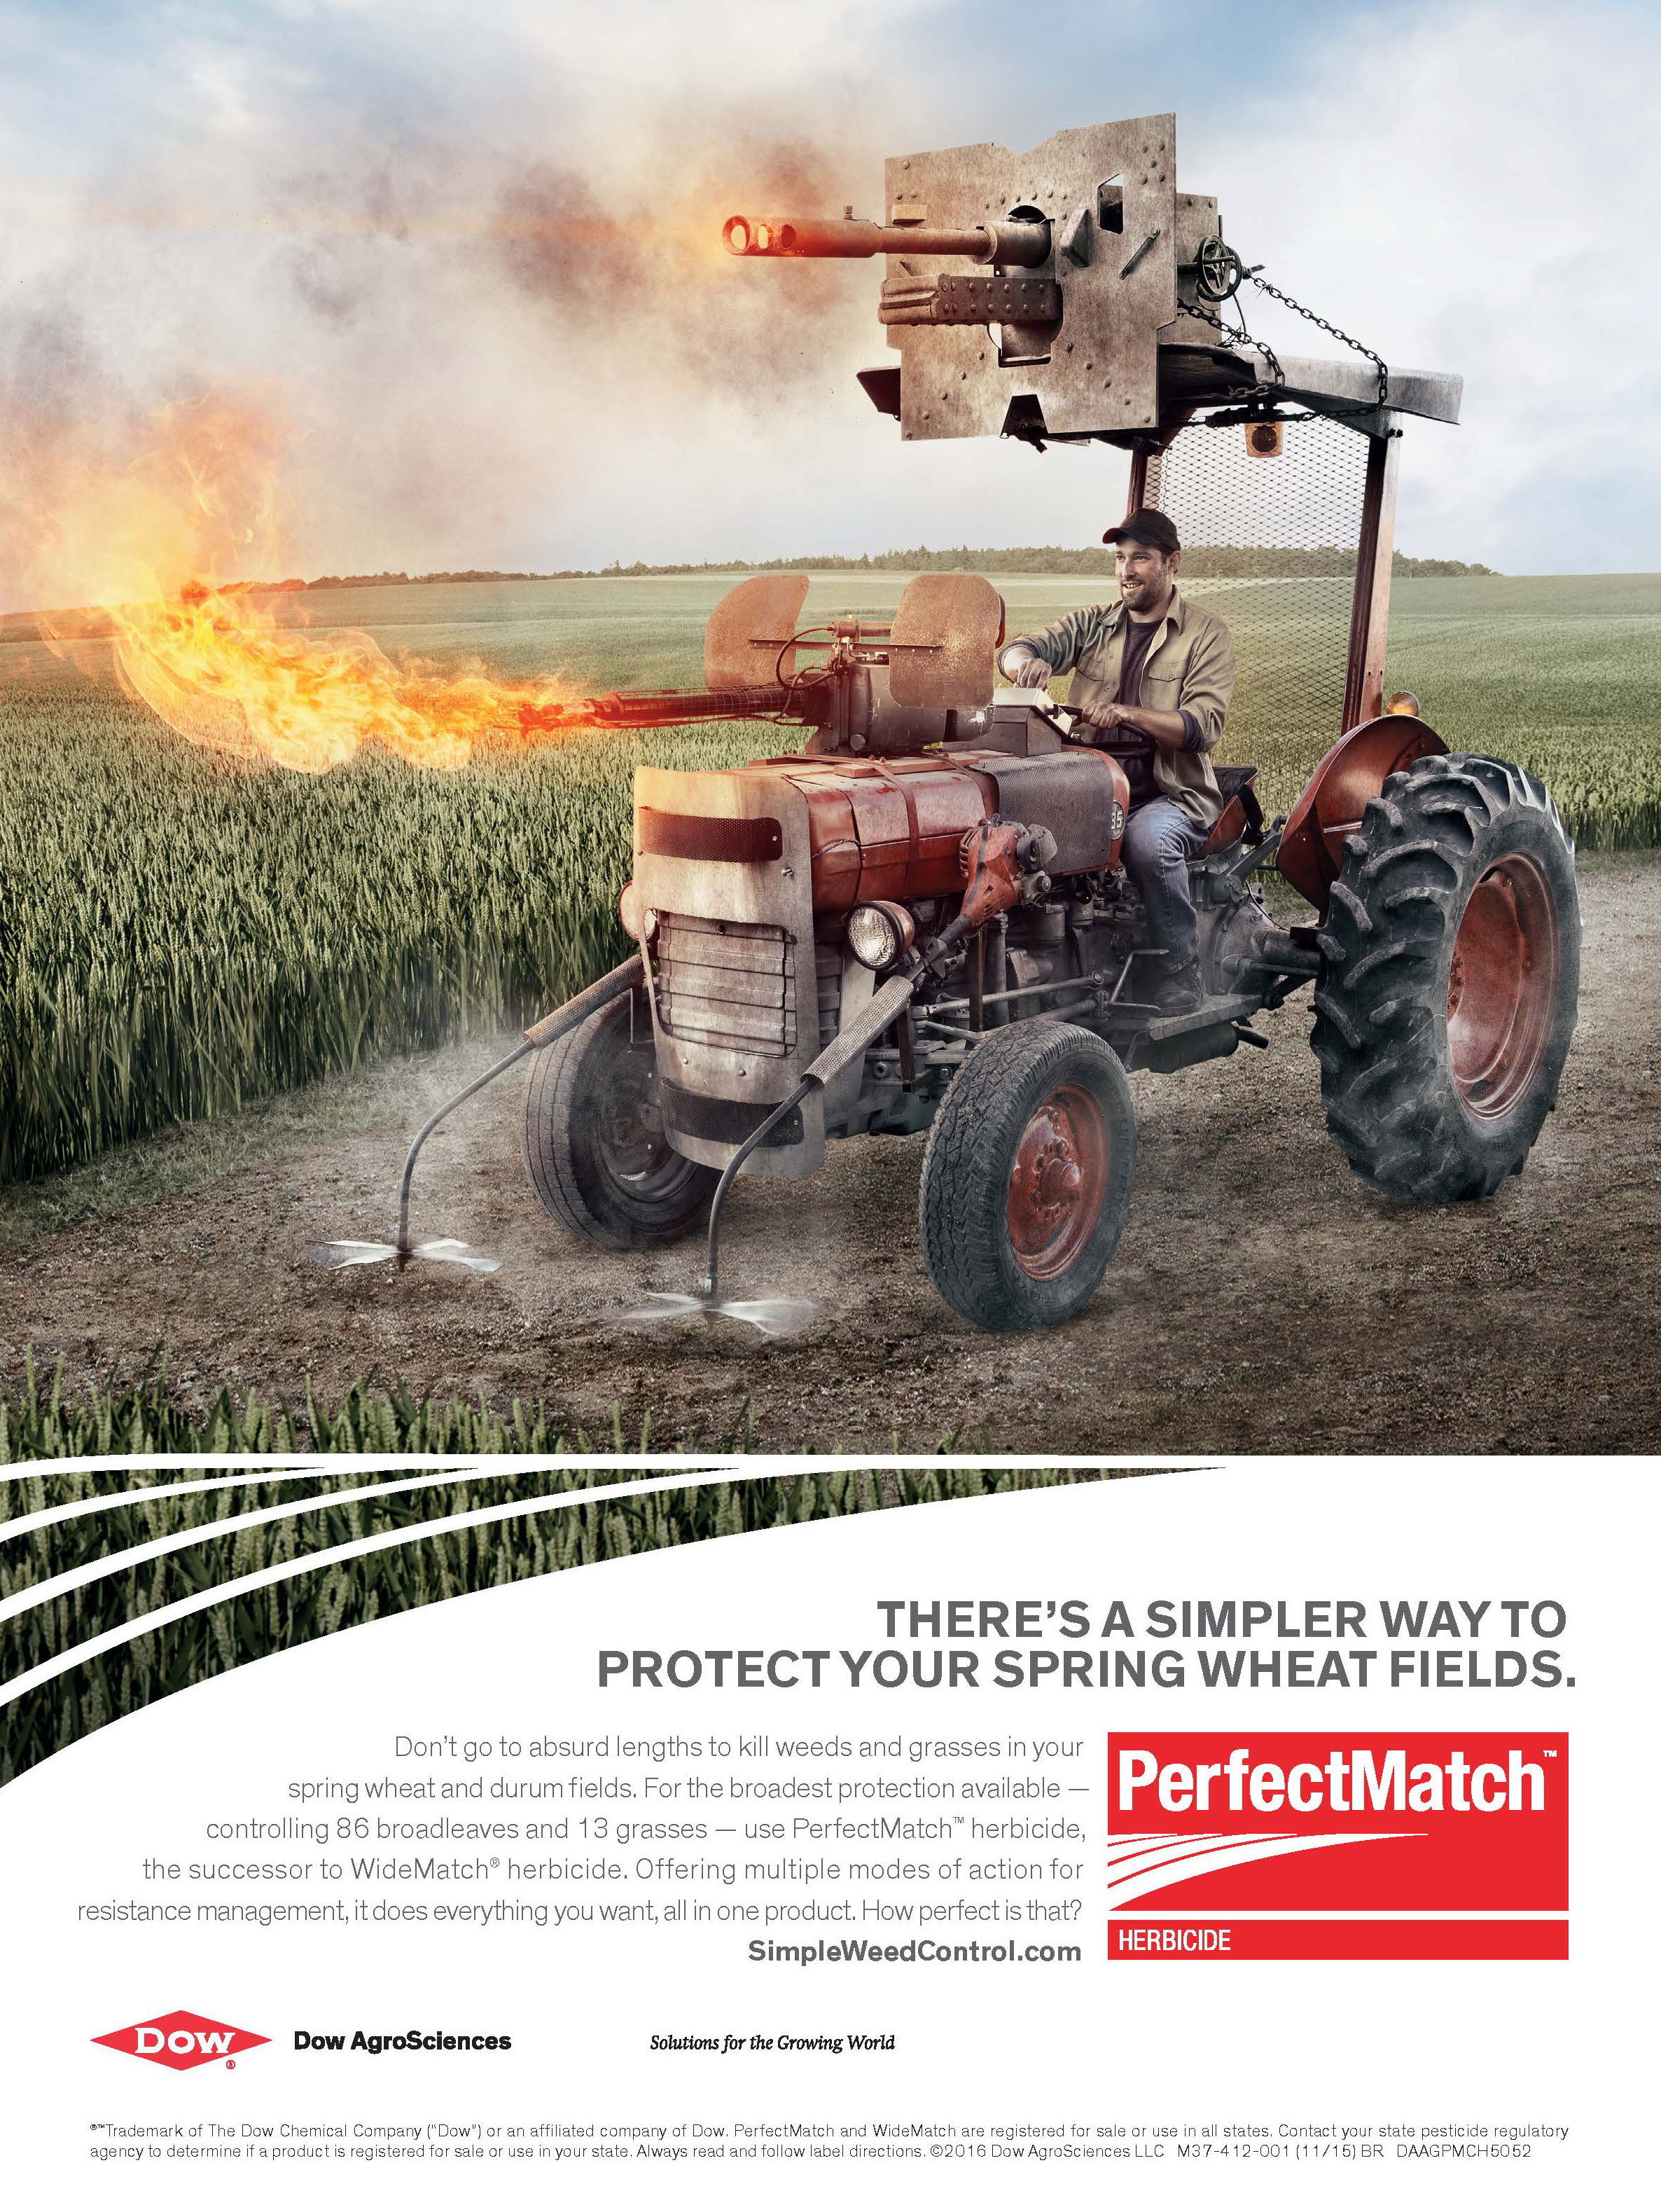 PerfectMatch_SuccessfulFarming_DAAGPMCH5052_r1_LR.jpg